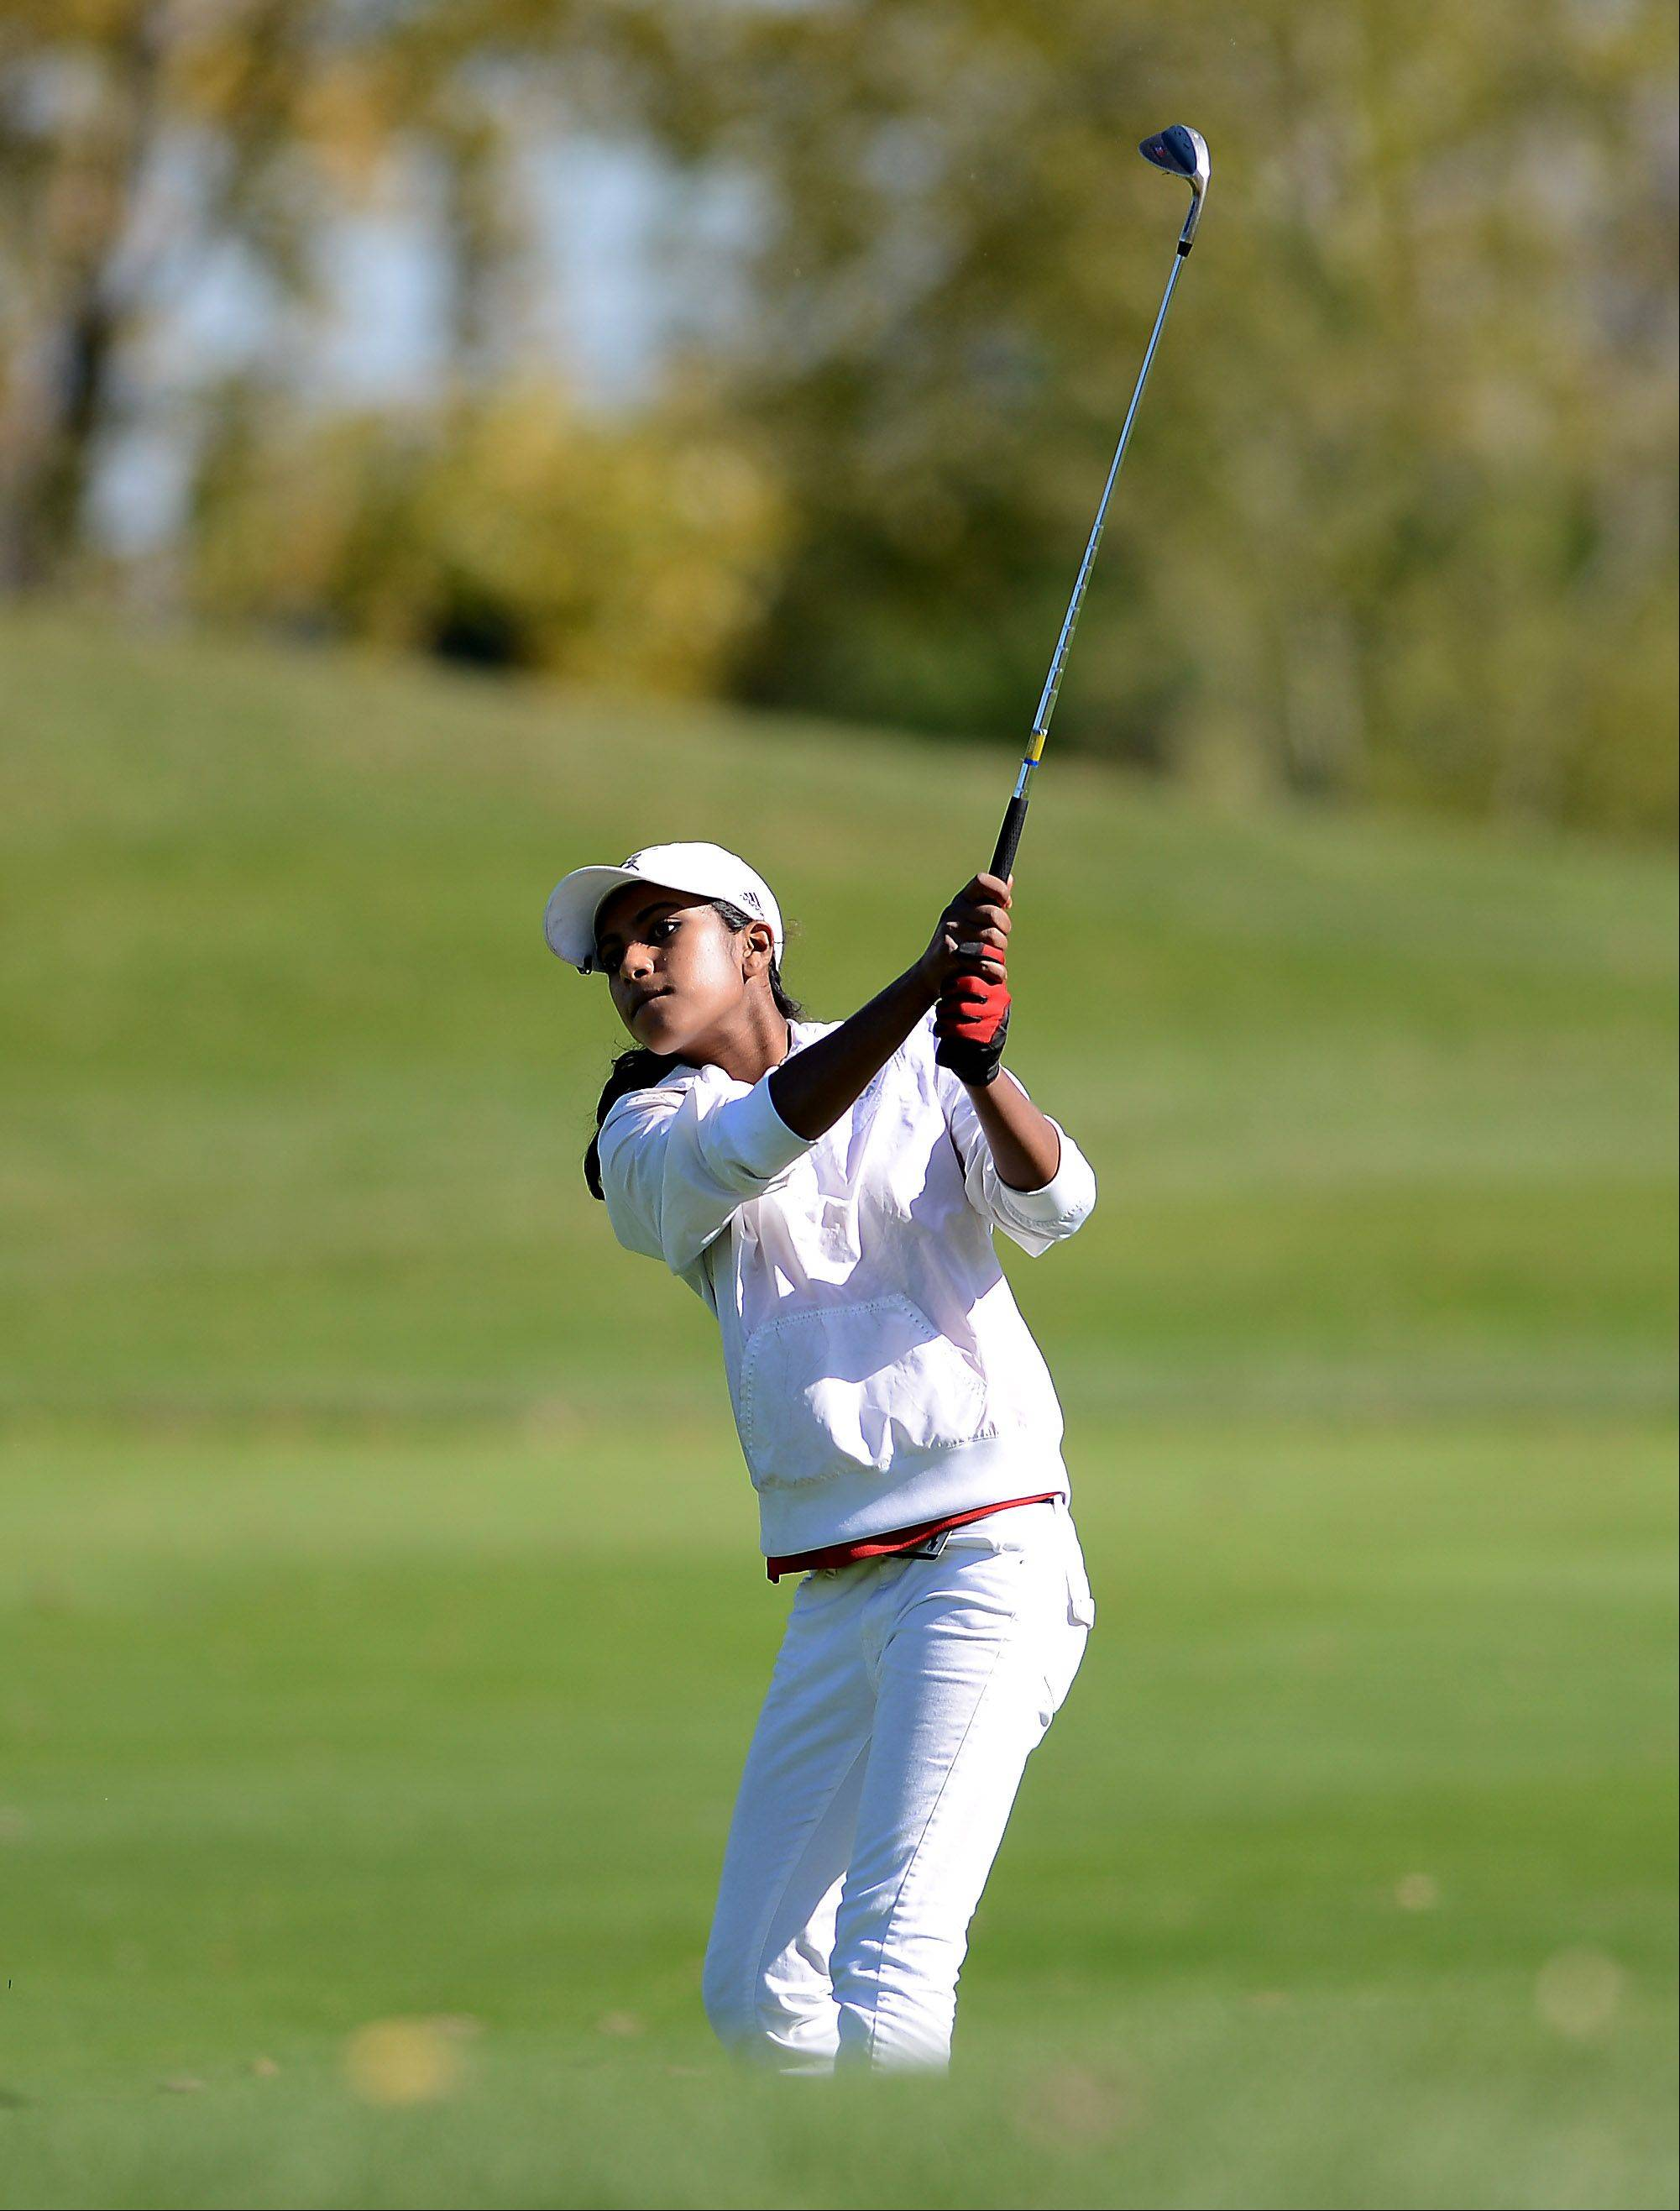 Barrington's Reena Sulkar hits from the fairway during Wednesday's Prairie Ridge regional golf action at Prairie Isle golf course in Crystal Lake